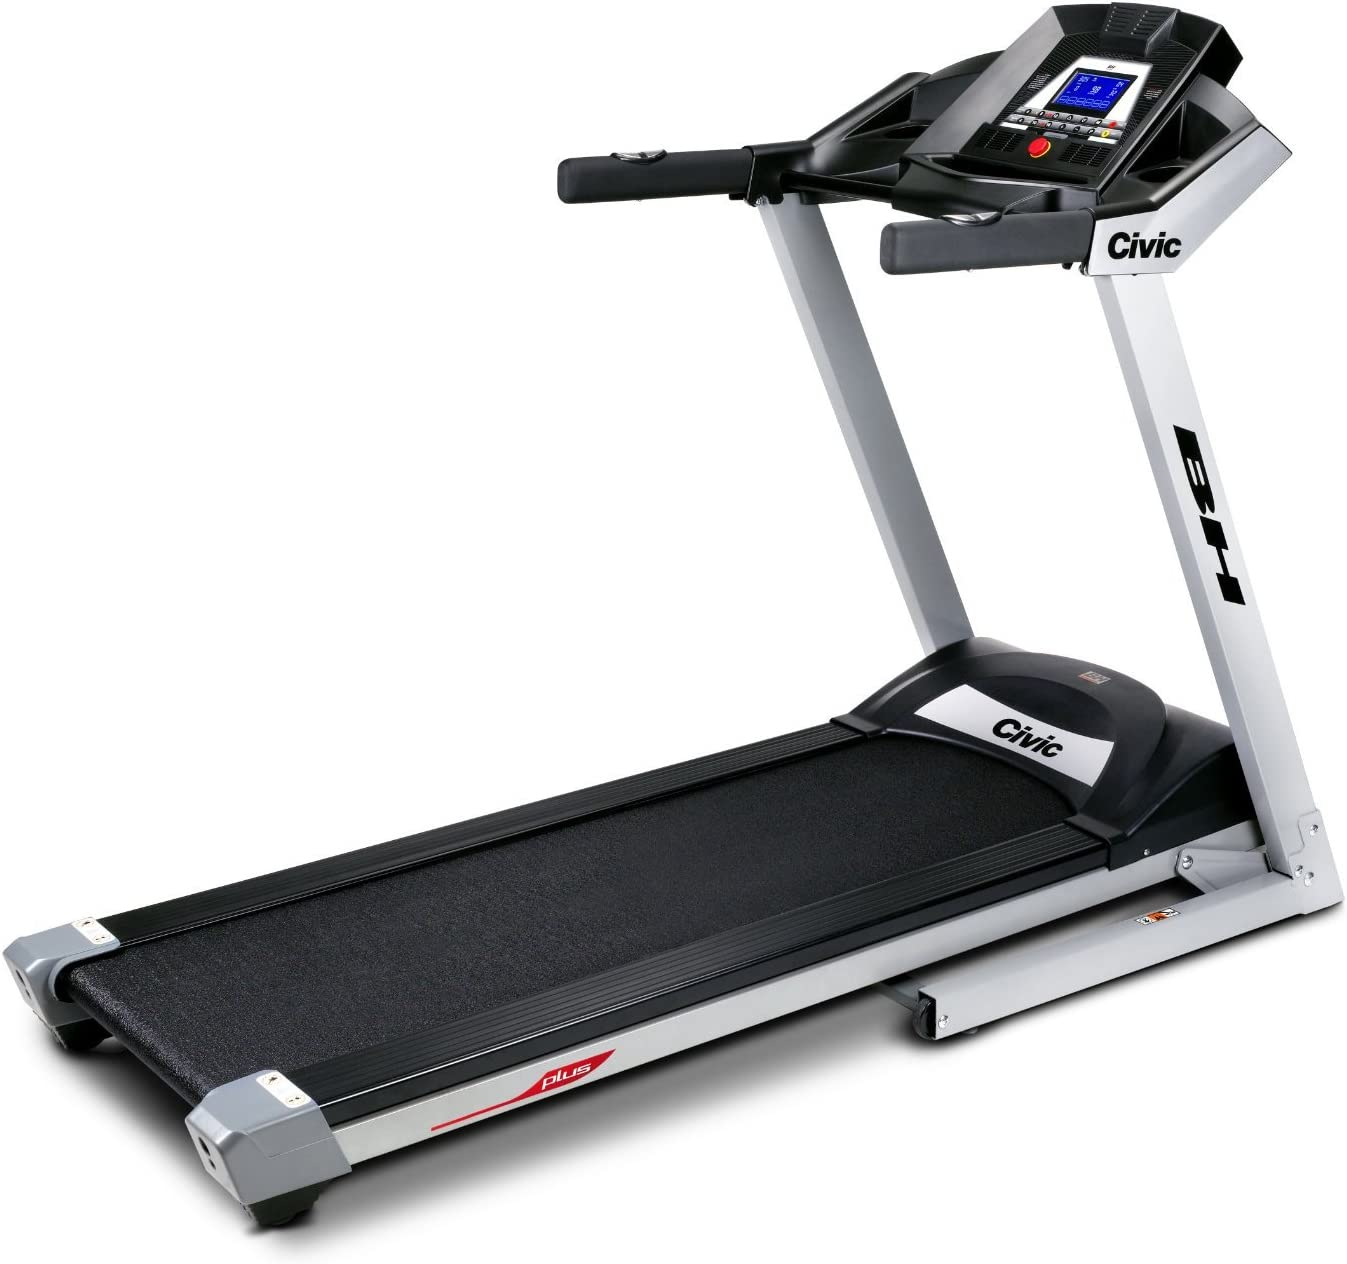 BH Fitness Civic Plus G6240G Cinta de Correr Plegable. Velocidad 1 ...